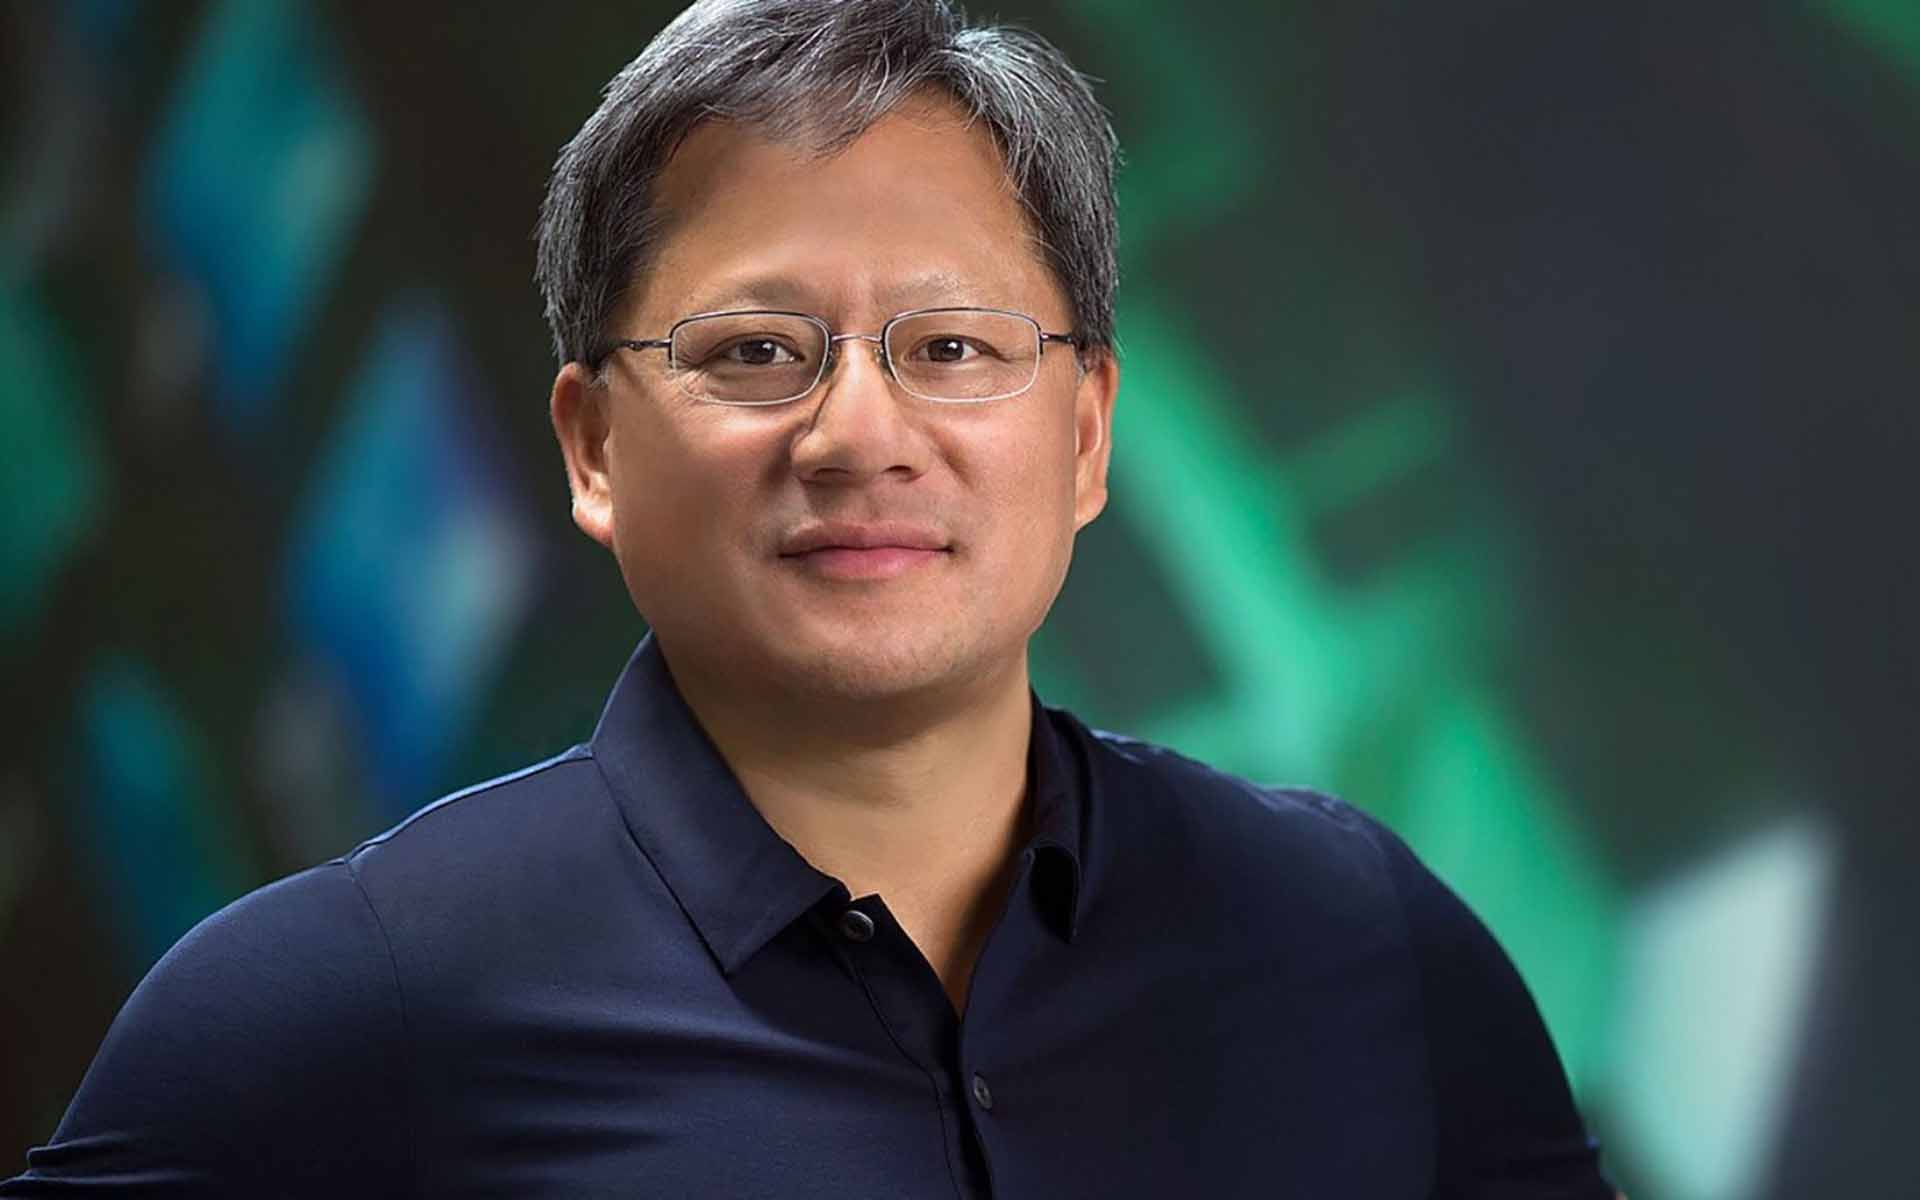 Nvidia CEO Believes Cryptocurrency Is the Future, Will Be Core Business for Company